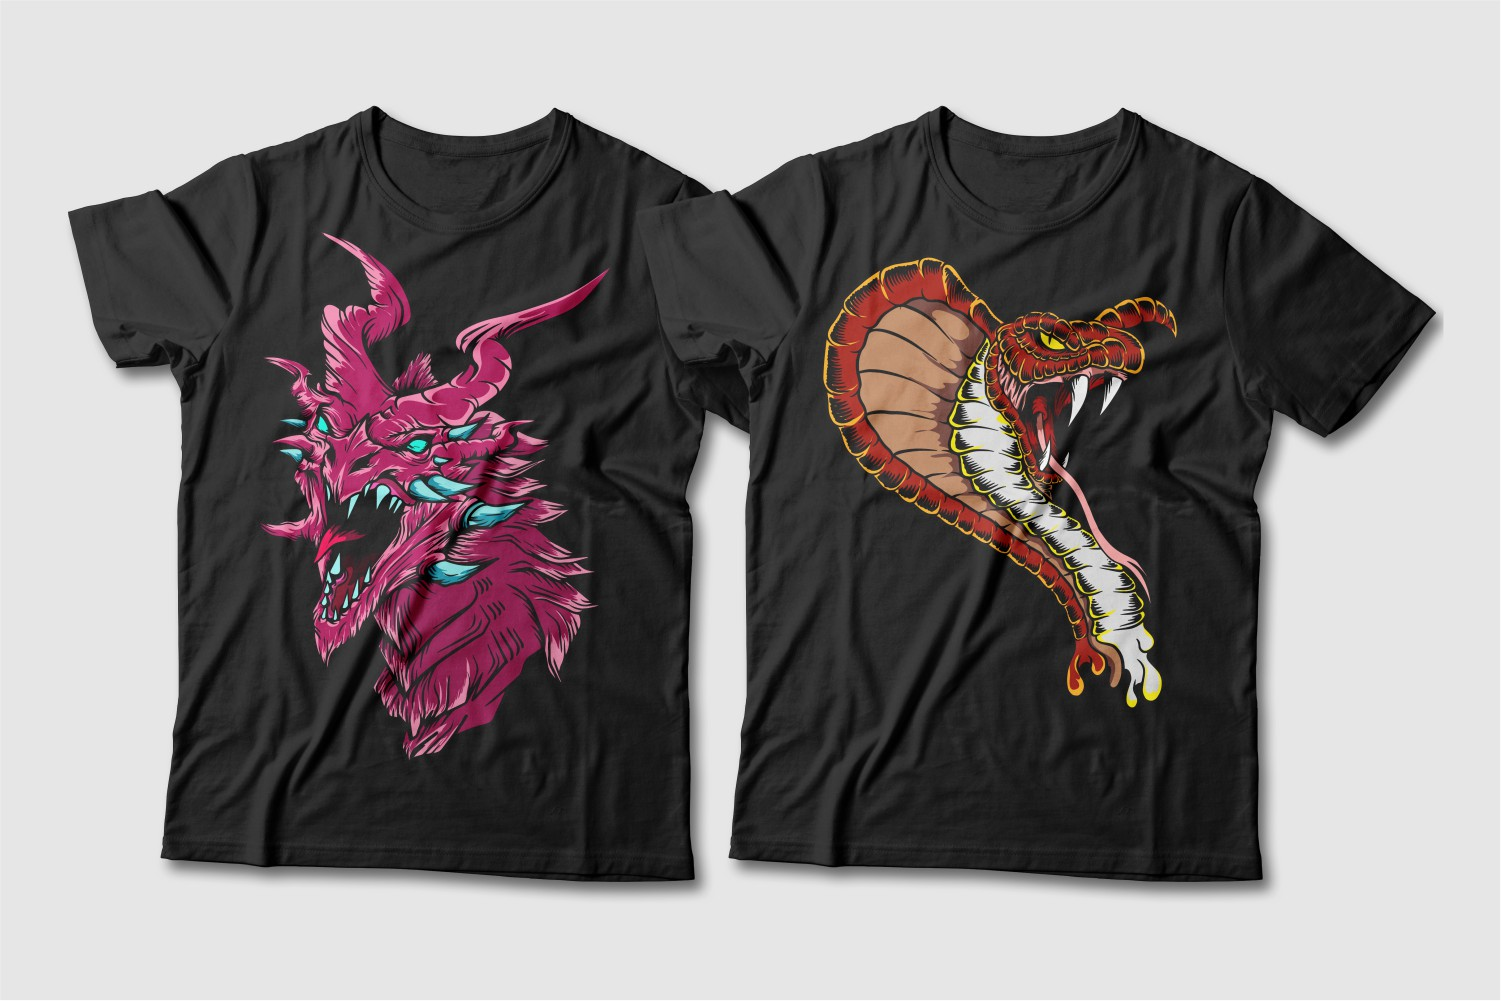 Black T-shirts featuring a pink dragon with turquoise horns and a brown cobra.